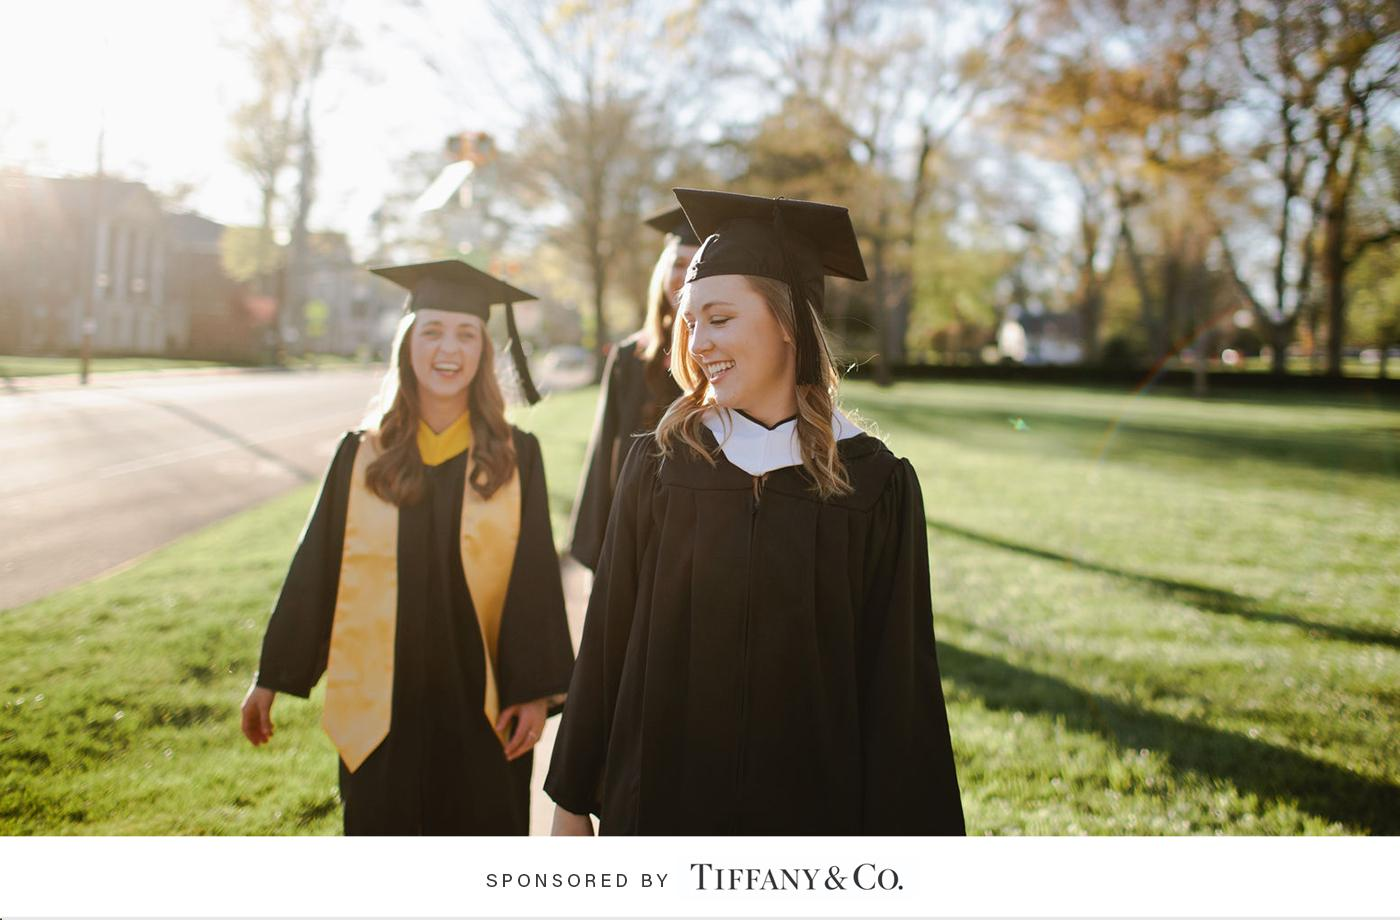 INVALUABLE GIFTS RECENT GRADS WILL ACTUALLY LIKE